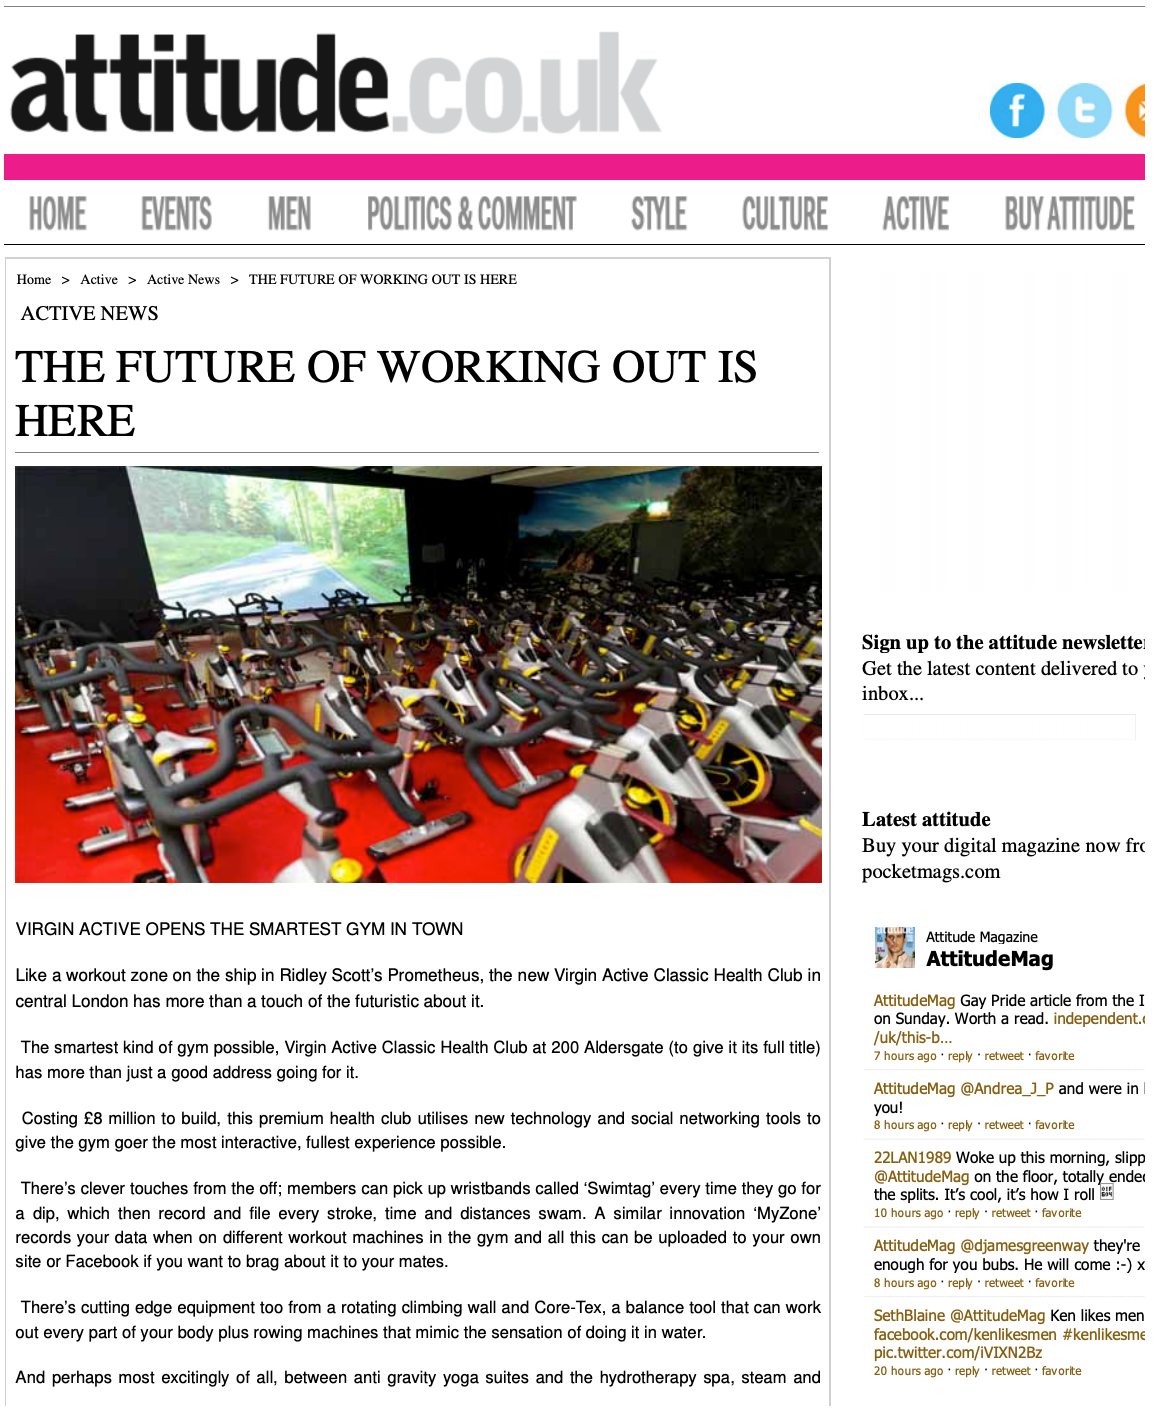 ALTITUDE MAGAZINE UK, JUNE 2012: The Future of Working Out is Here